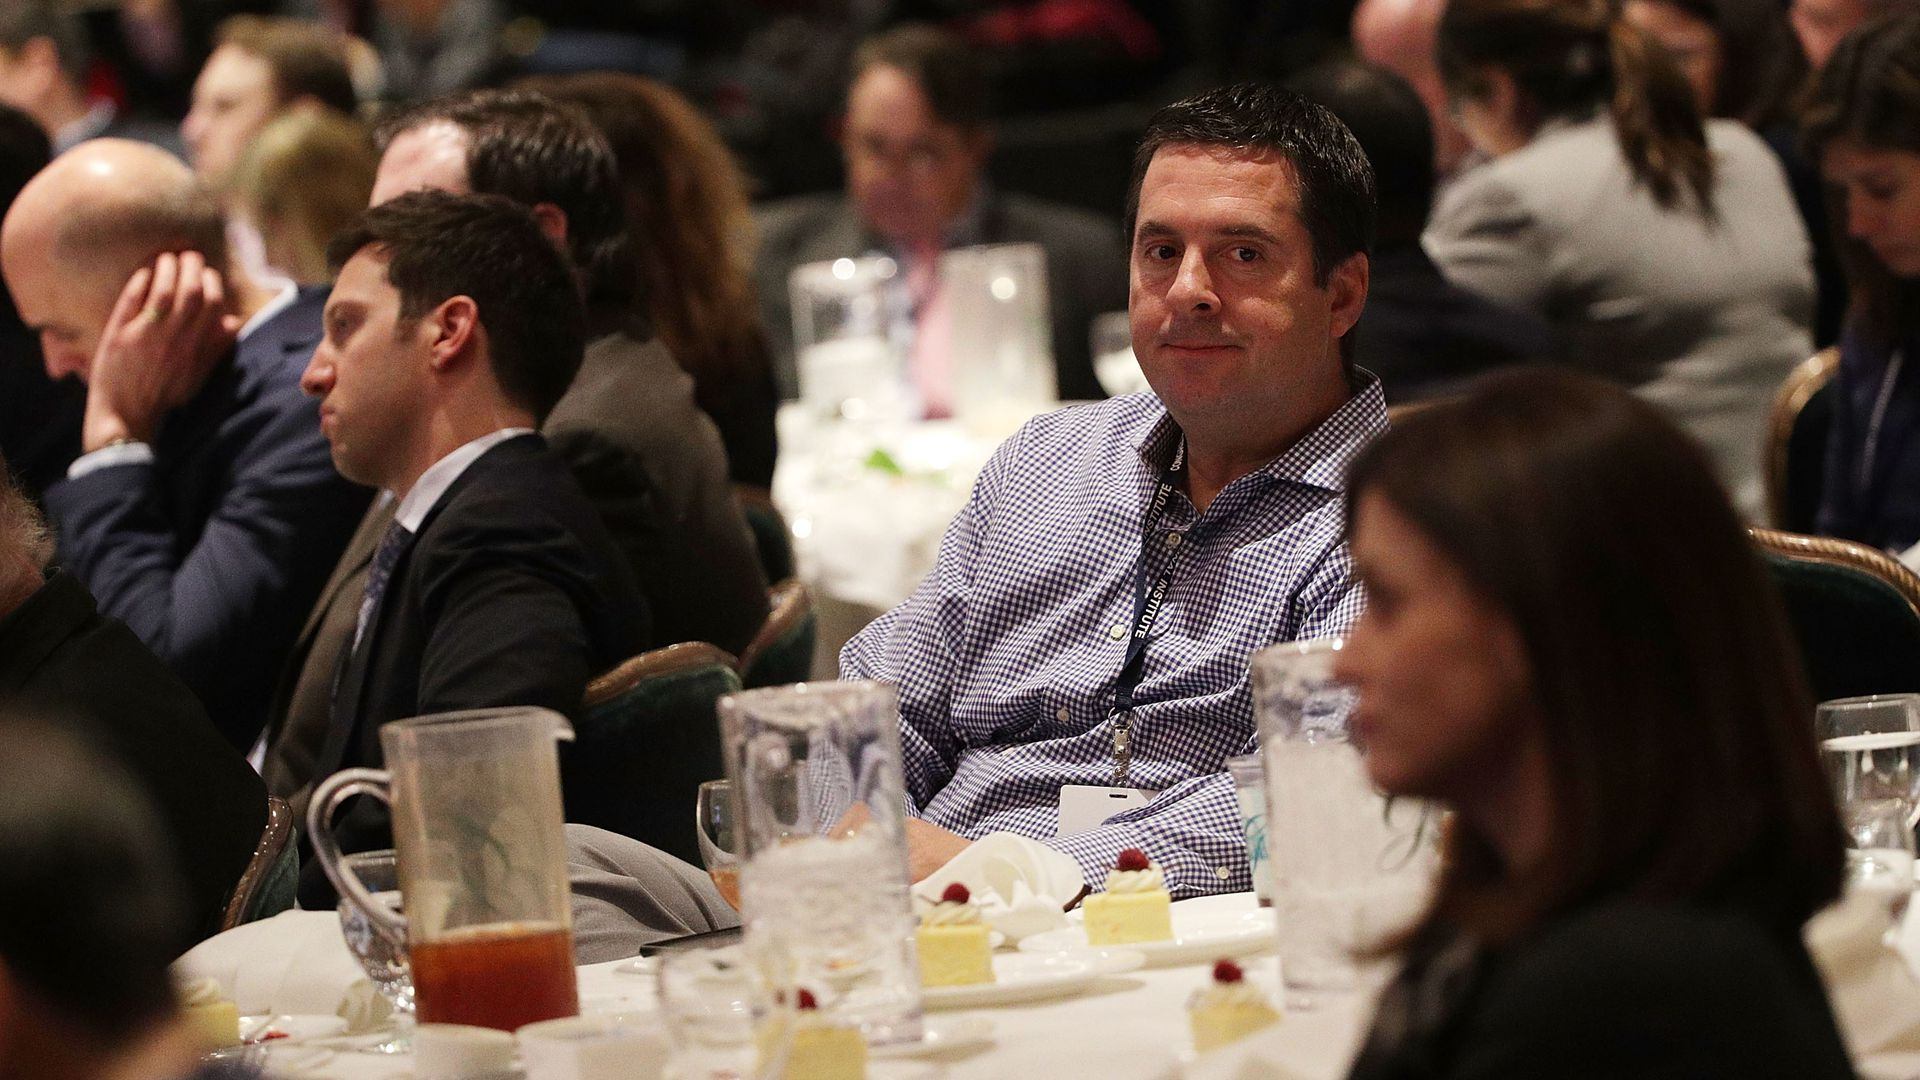 Rep. Devin Nunes at a Trump event